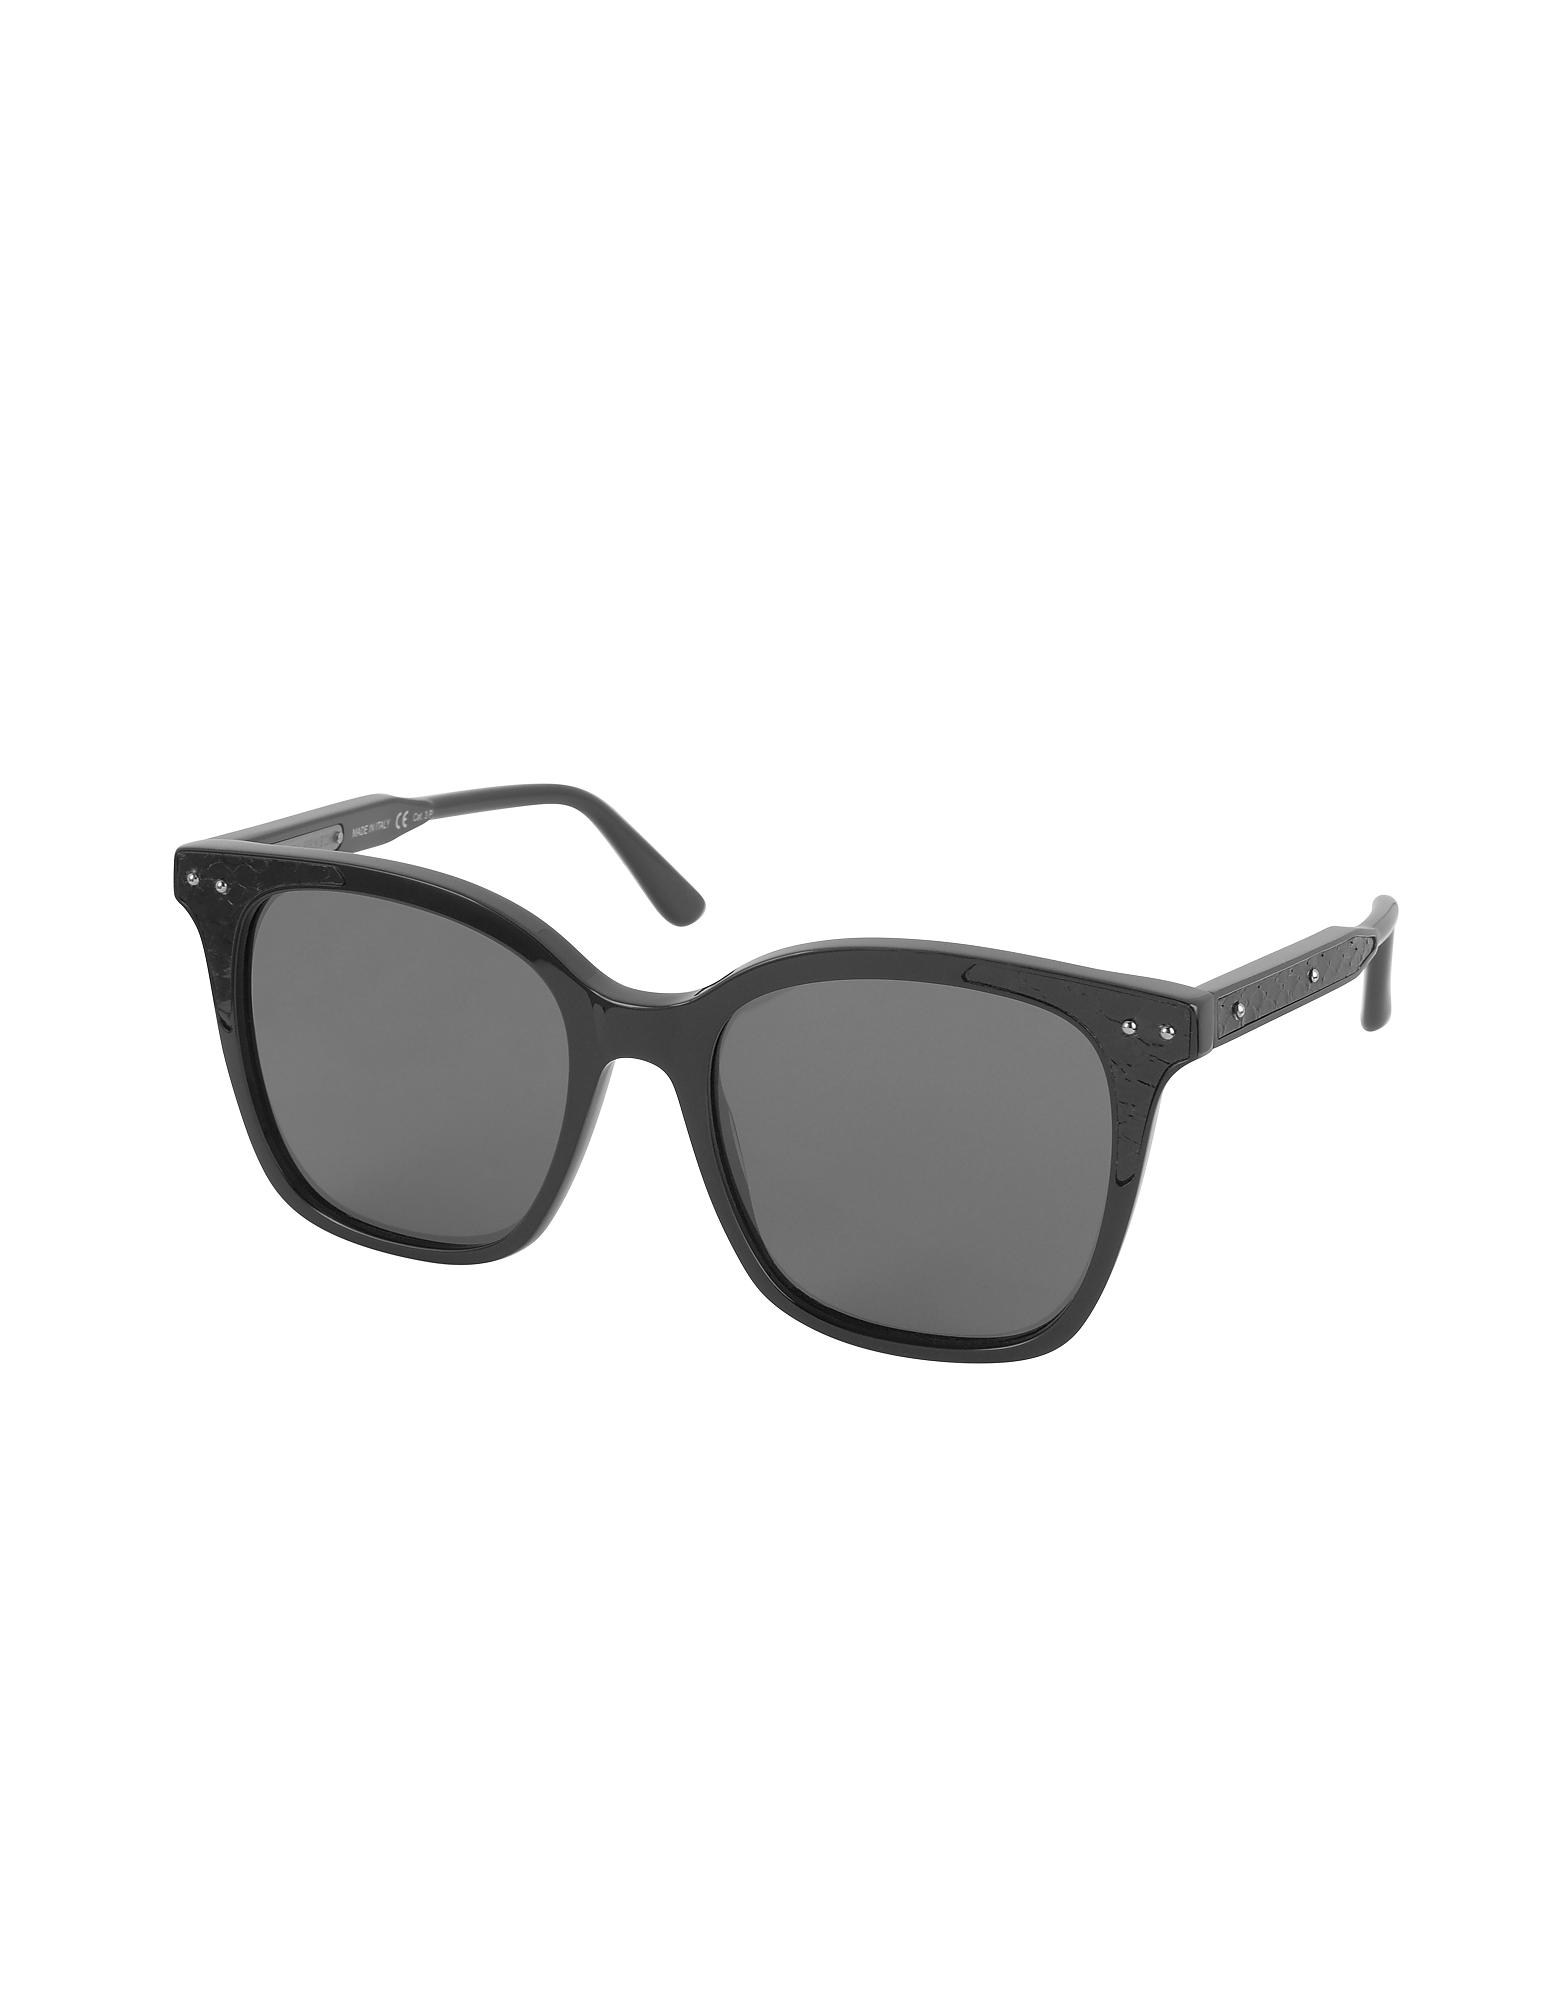 BV0118S 005 Black Acetate Frame Women's Sunglasses от Forzieri.com INT